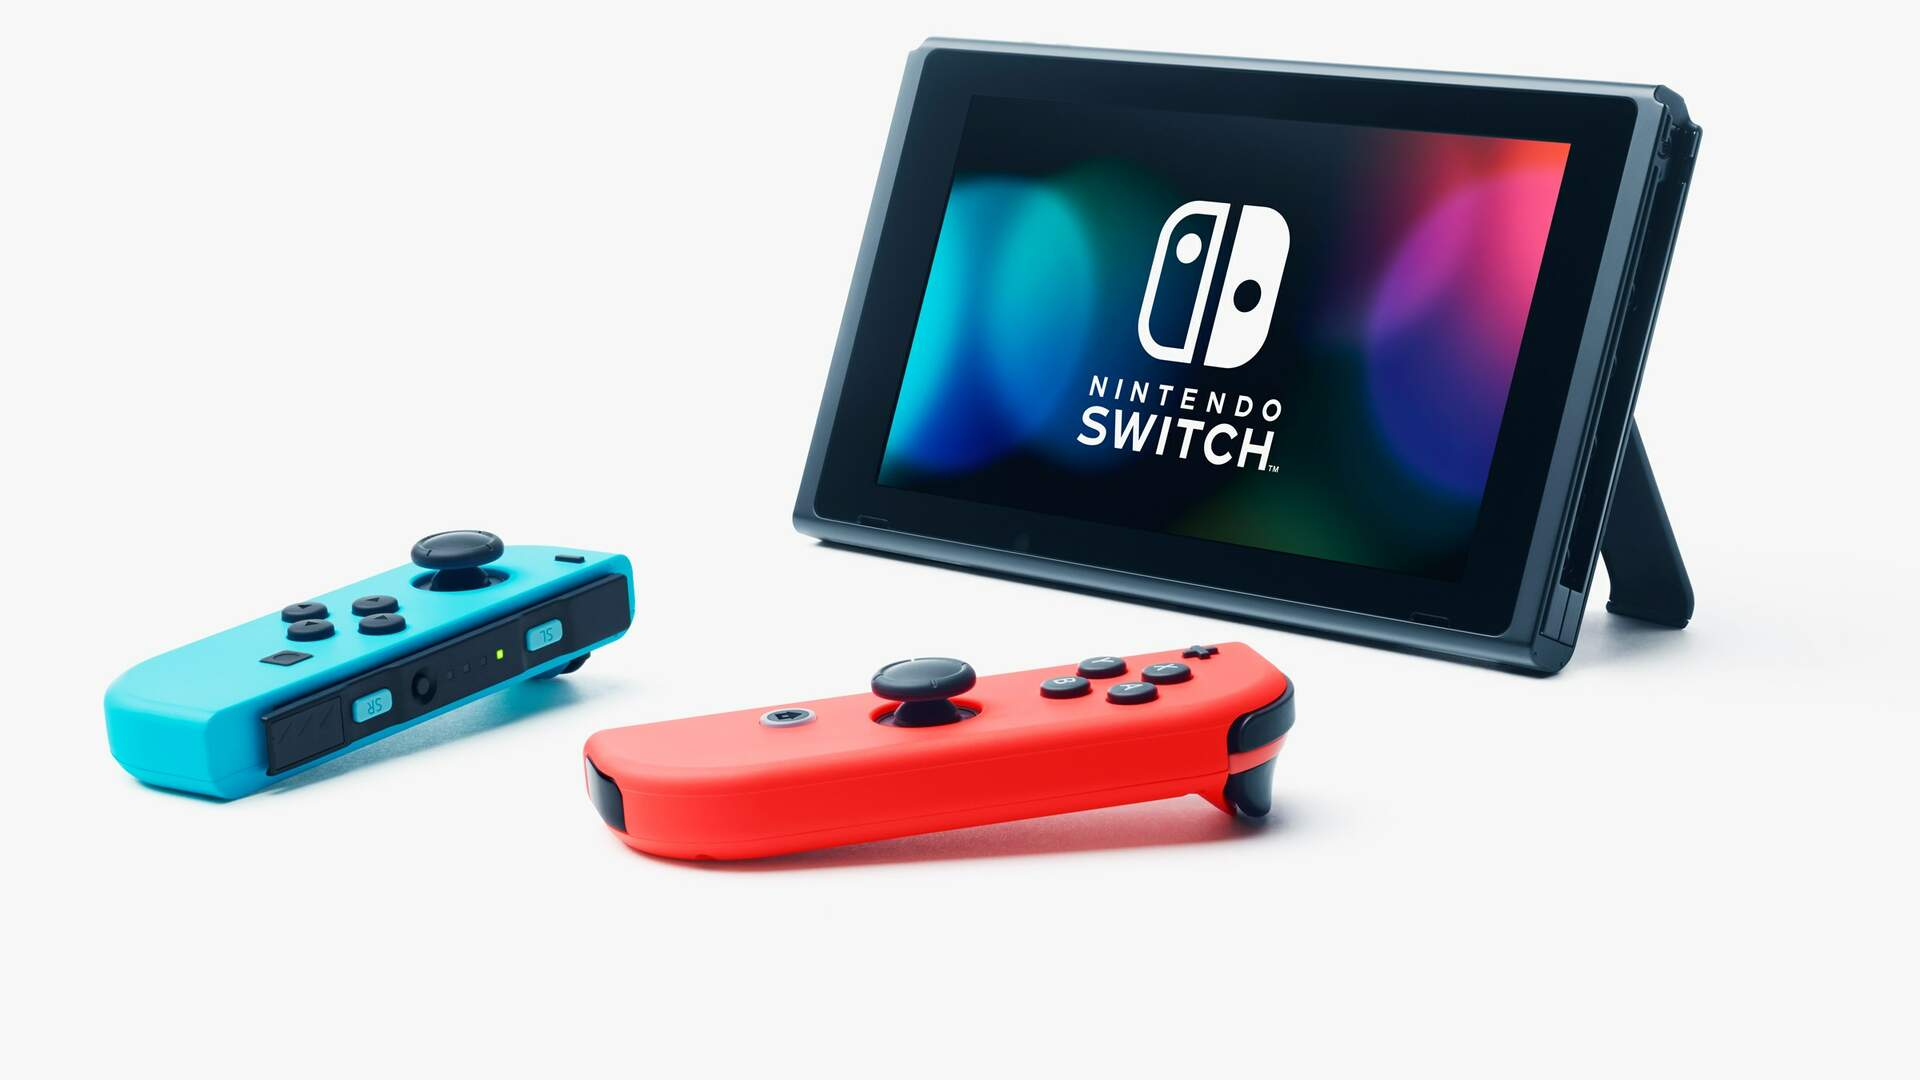 In Spite of Shortages, Nintendo Assures More Switch Systems Are On the Way